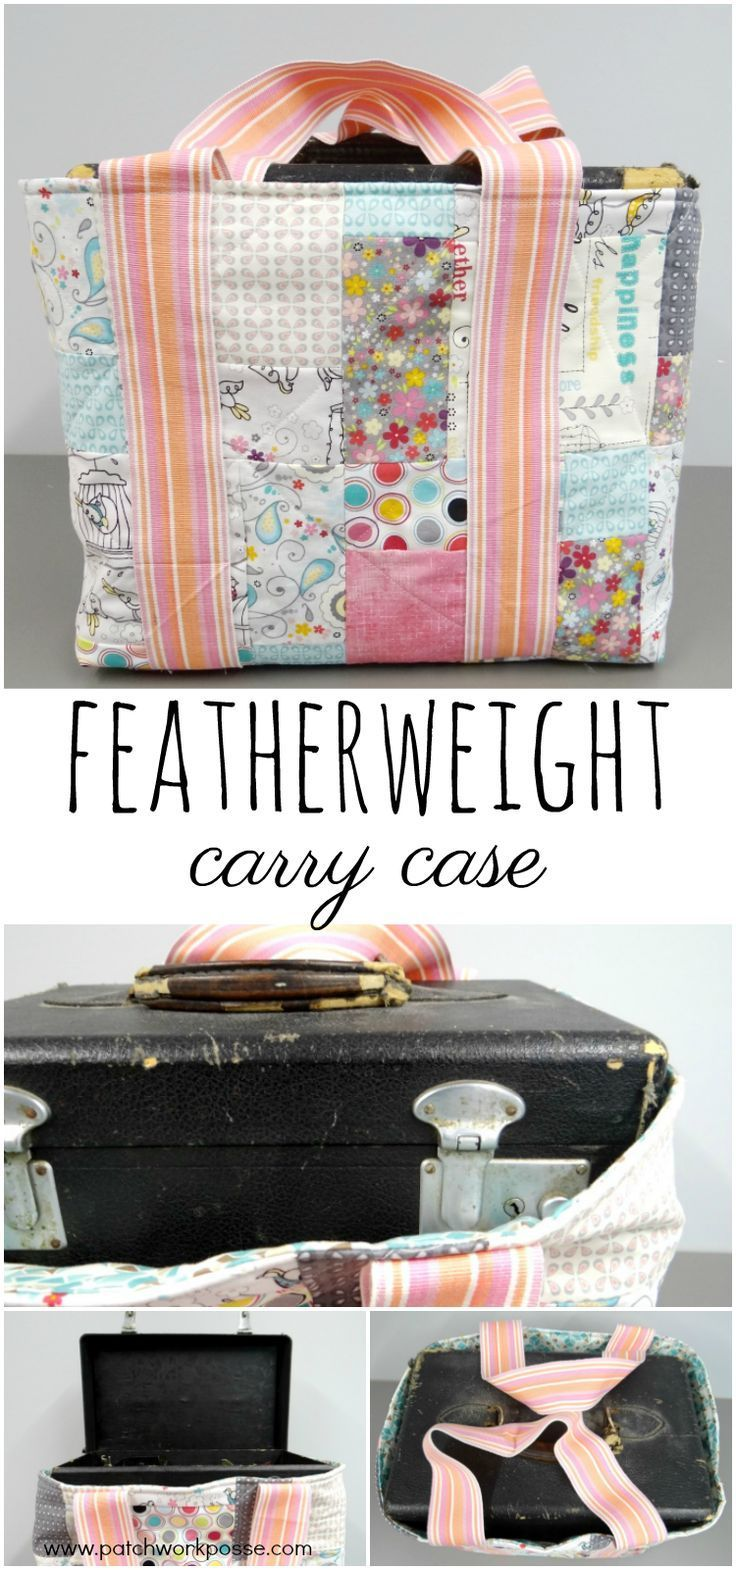 Featherweight carry case tutorial. Sew up a cute case with straps to store and travel with your machine. Simple to do and works great!